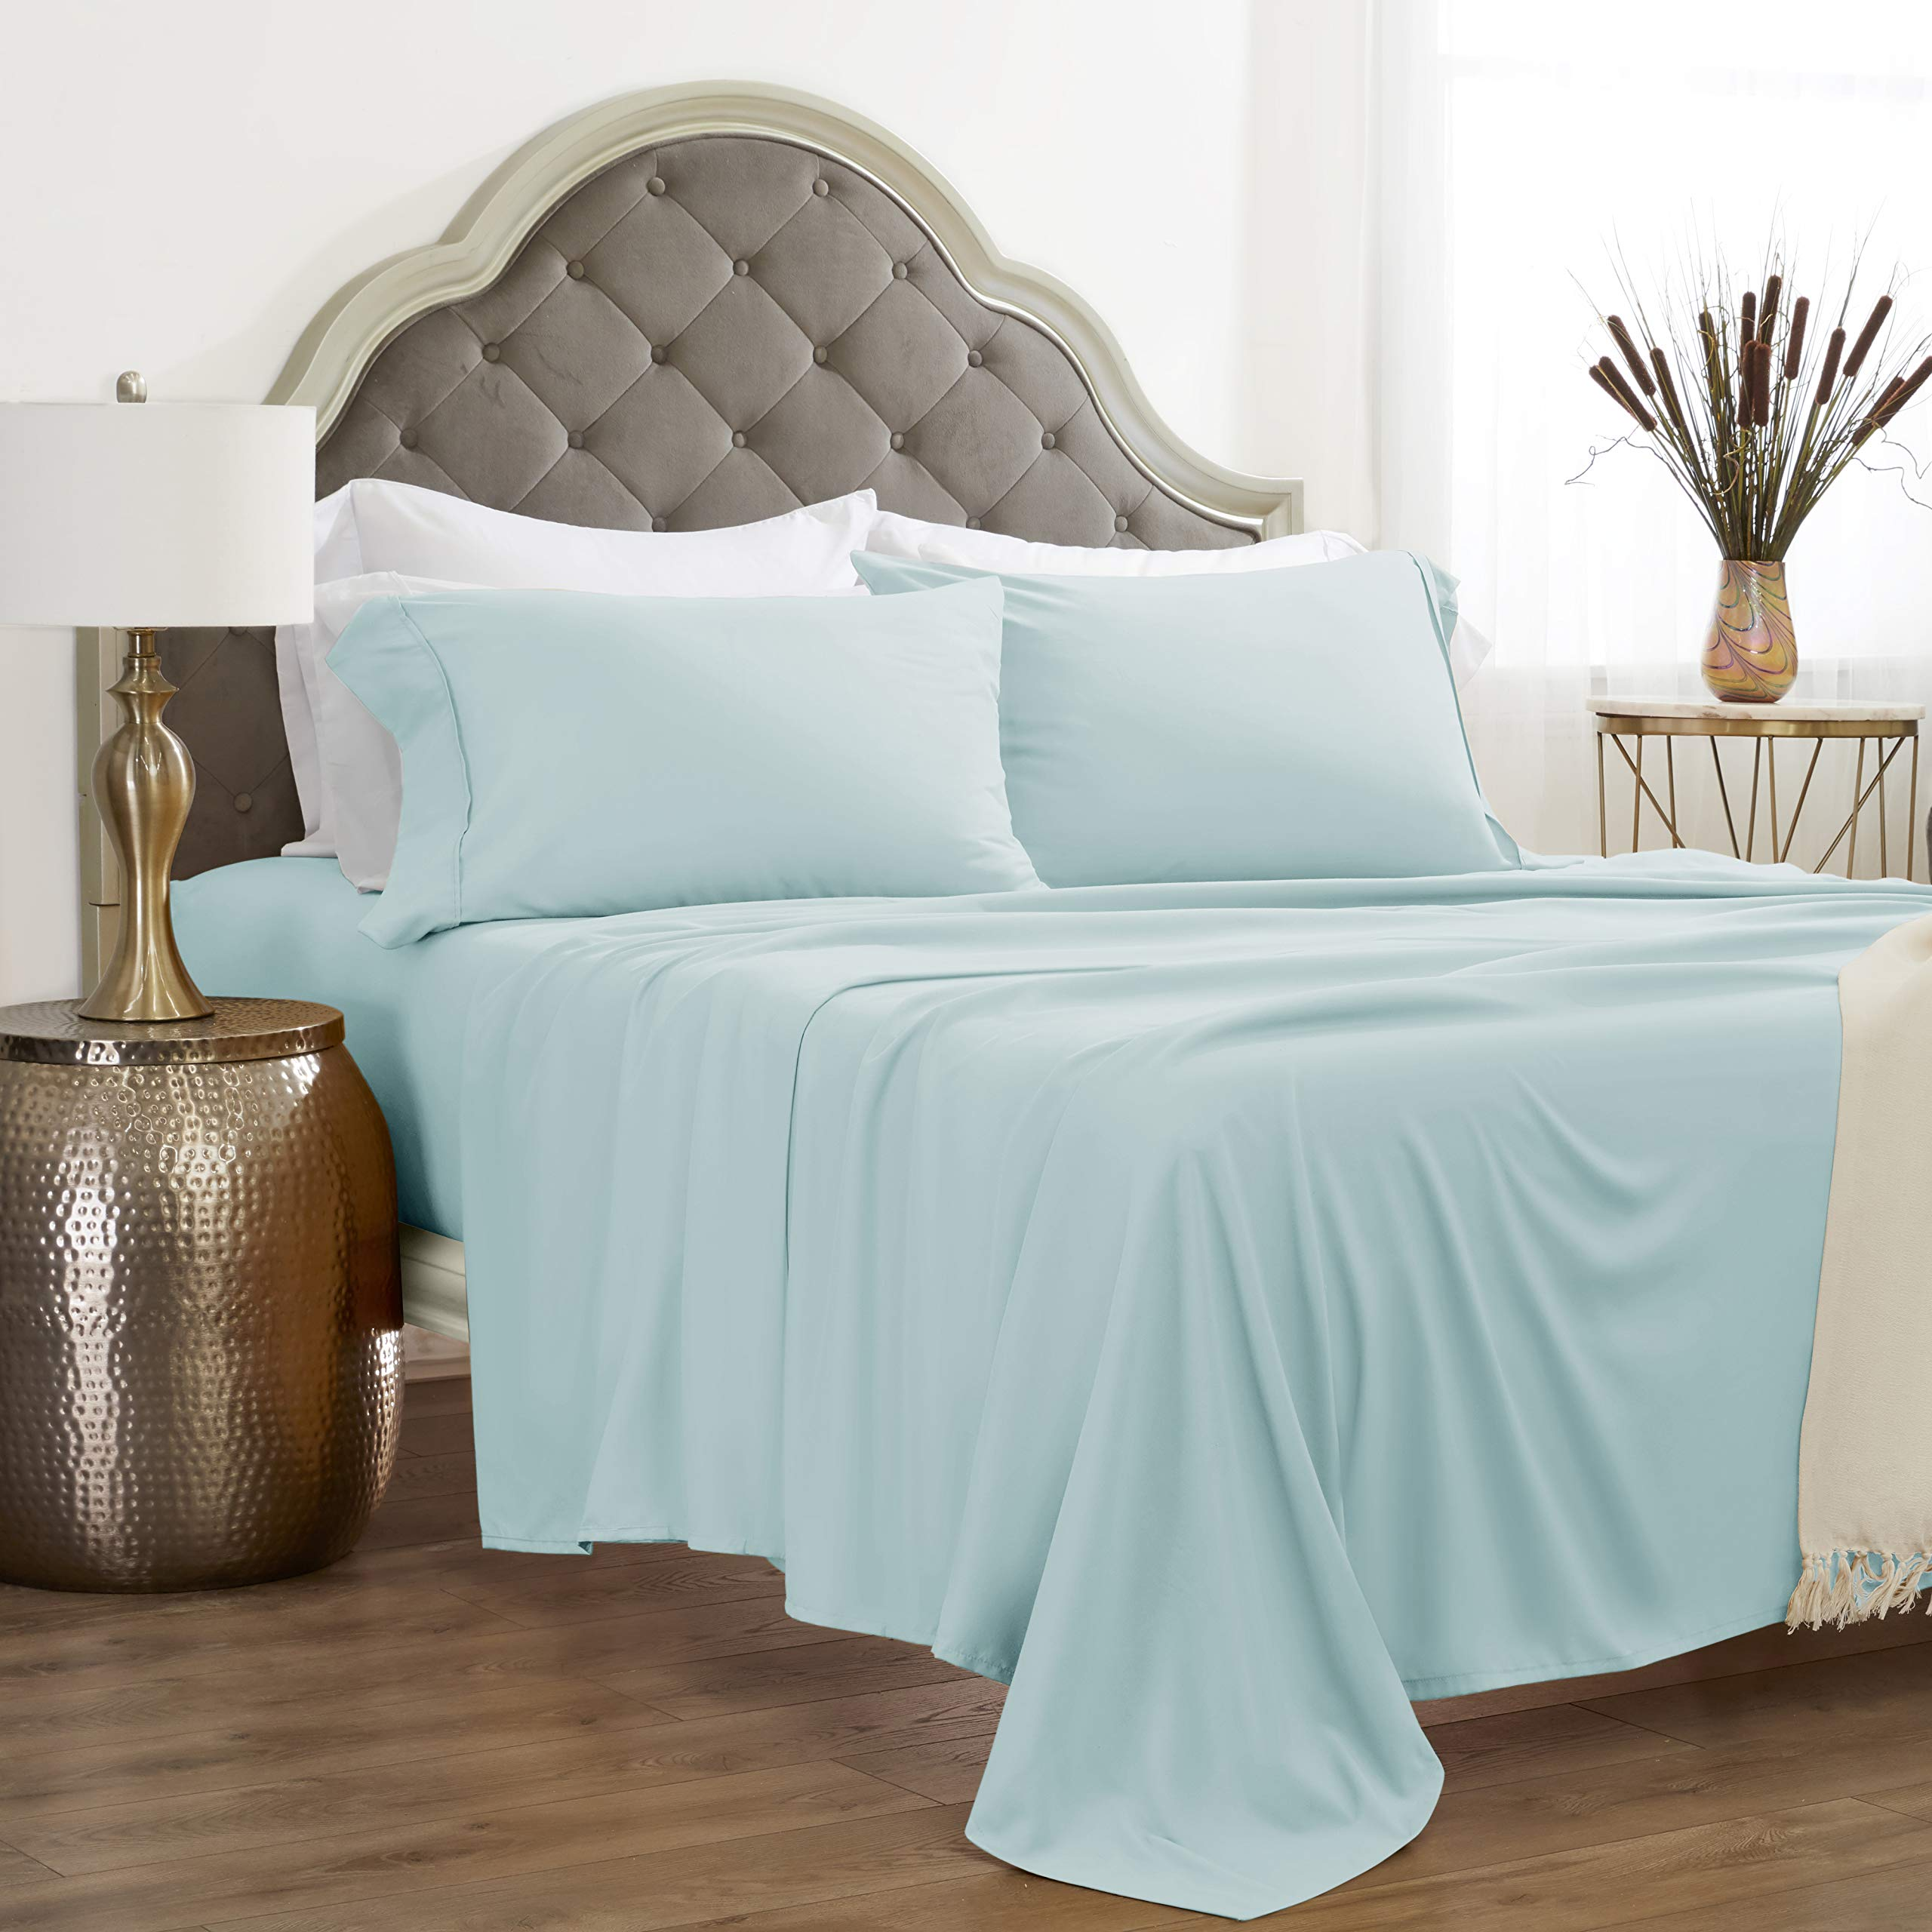 """JÁCLER Bedding Sheet Set Soft Double Brushed Microfiber Deep Pockets Fits 16"""" Mattress 1 Flat 1 Fitted 2 Pillowcases 